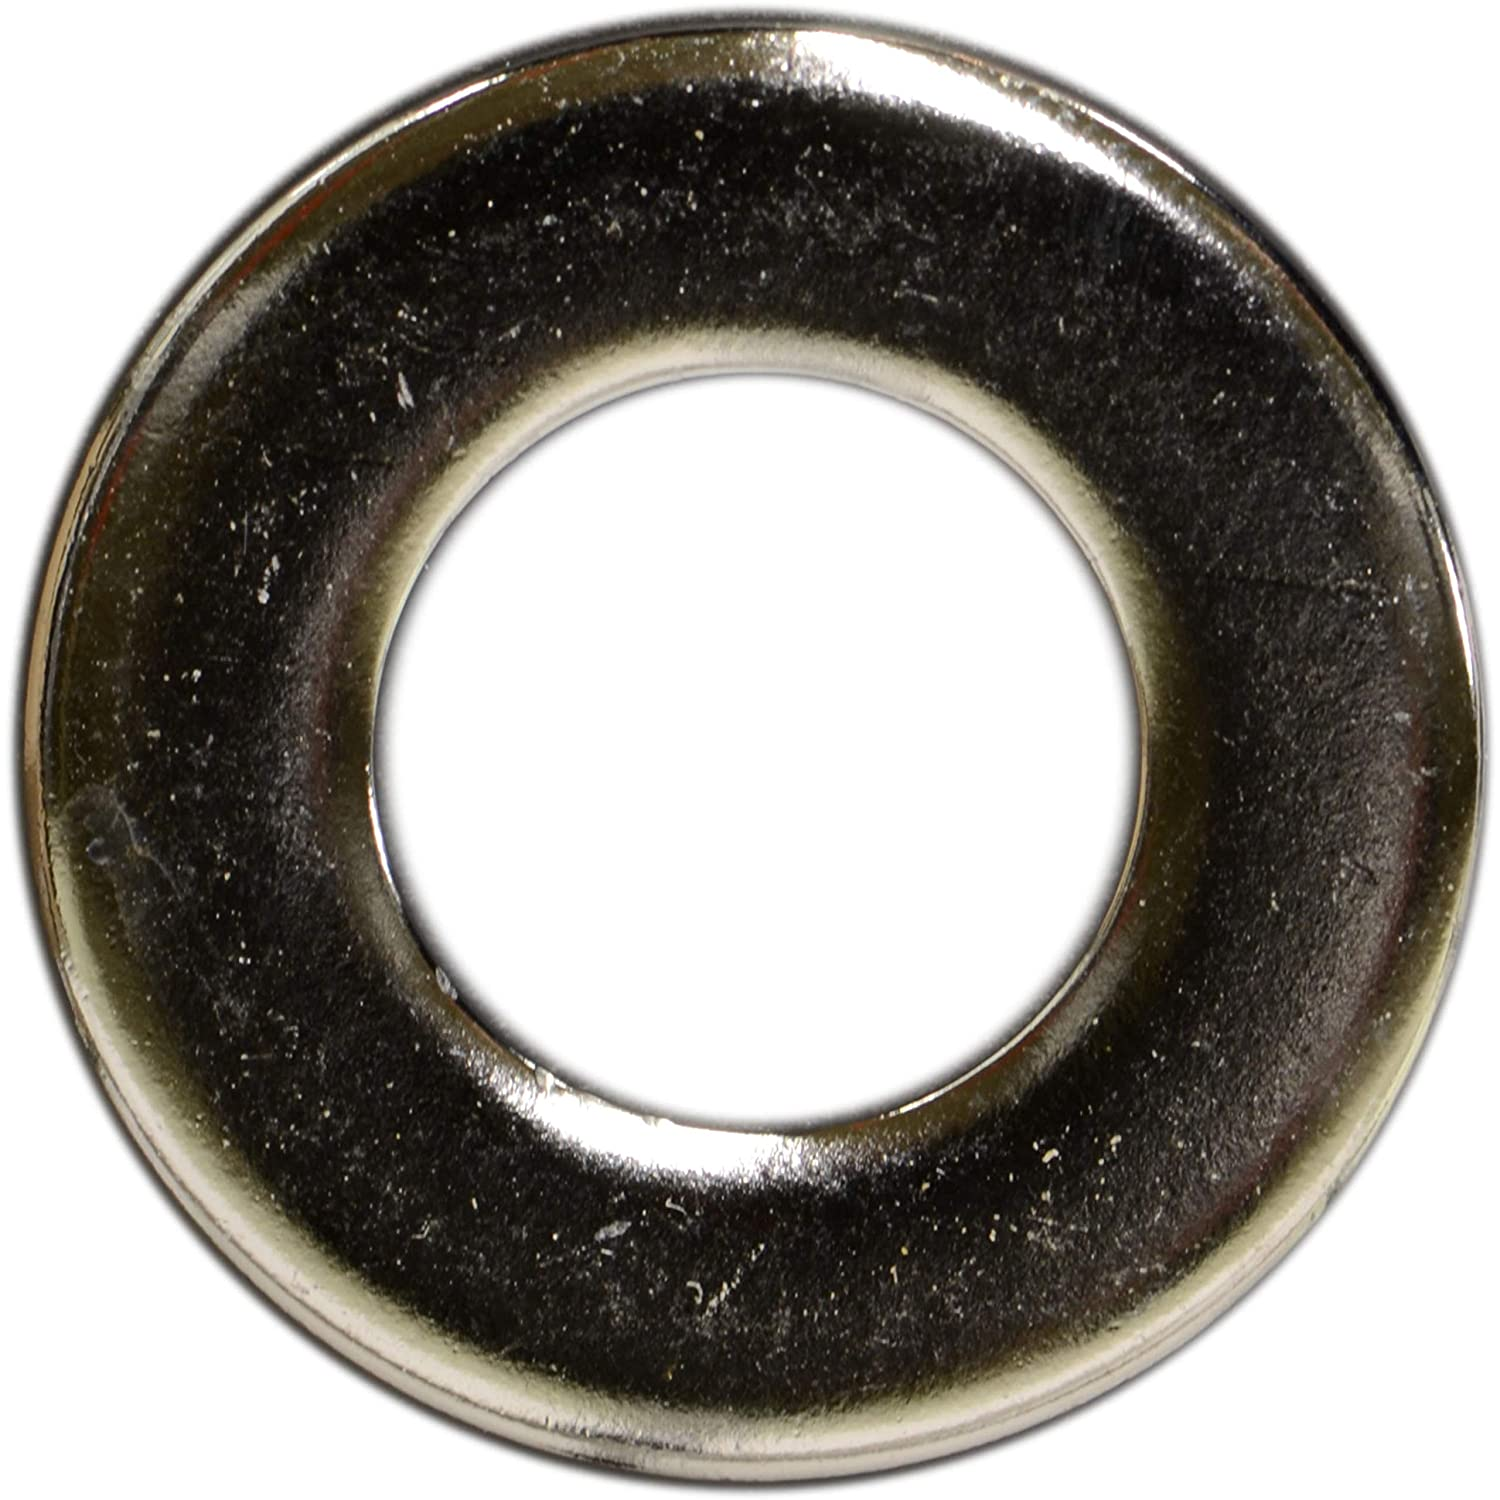 3//8 Hard-to-Find Fastener 014973442330 SAE Flat Washers Piece-8 Midwest Fastener Corp